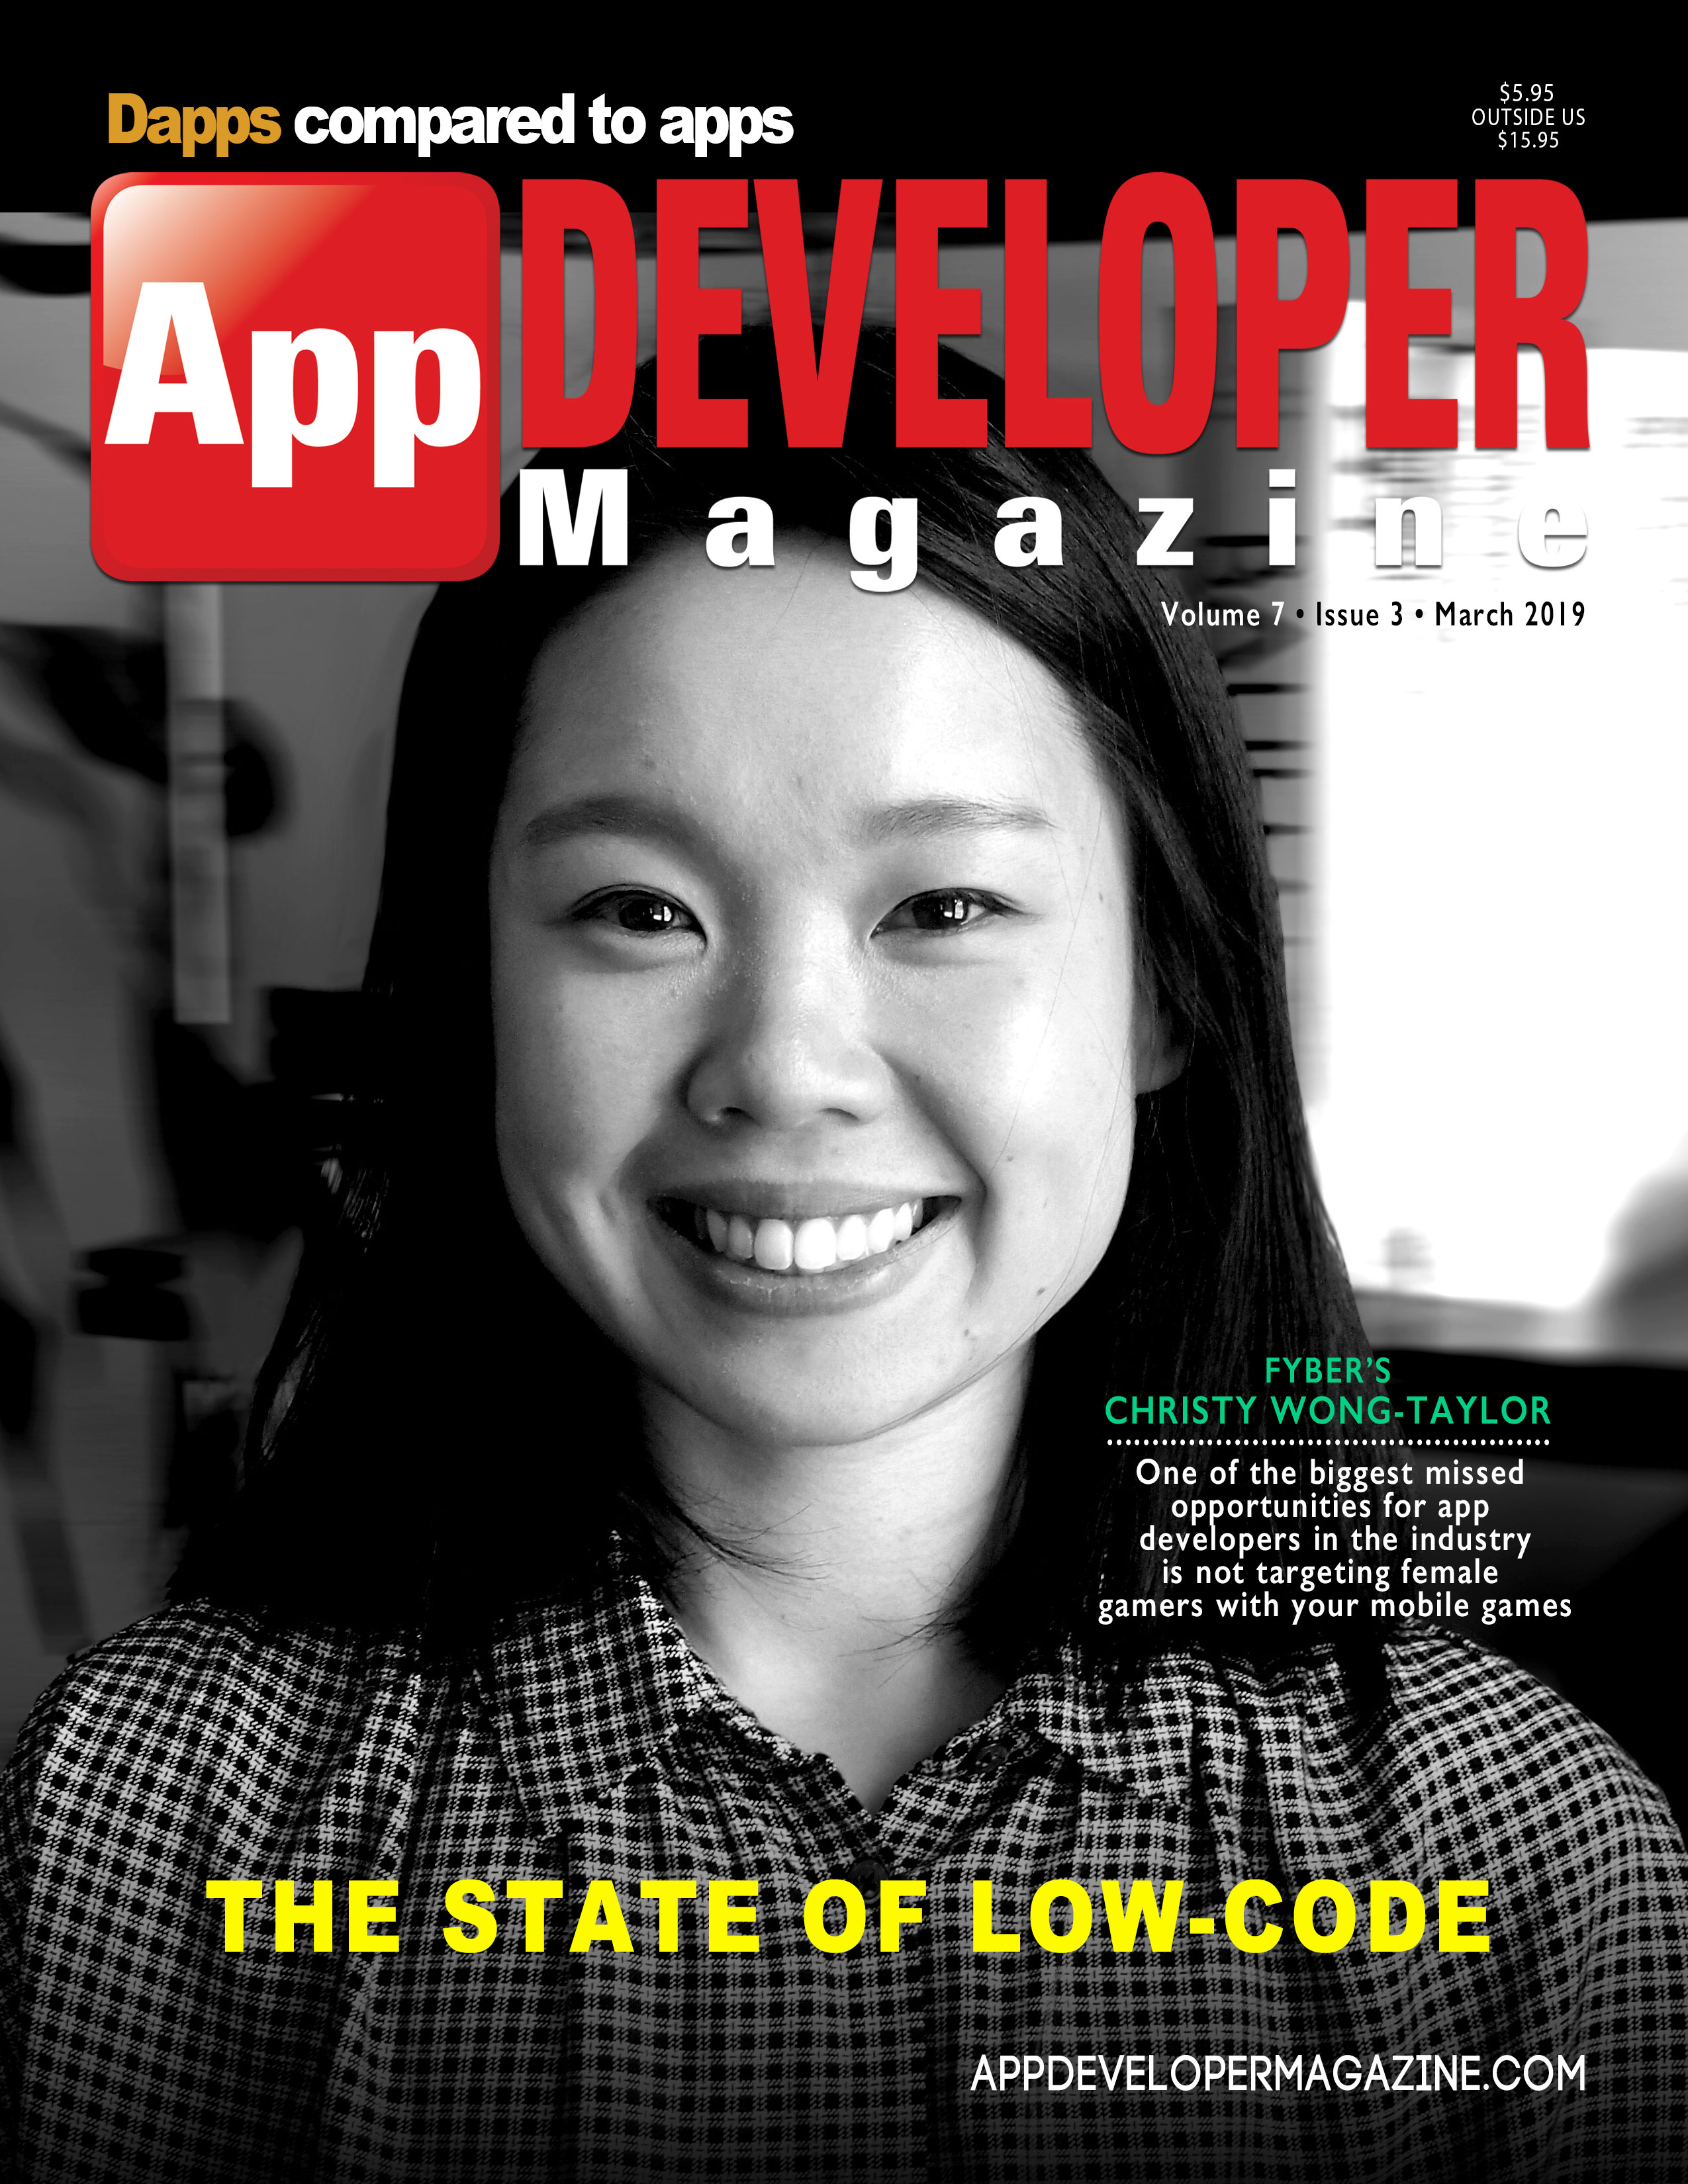 App Developer Magazine March 2019 Cover